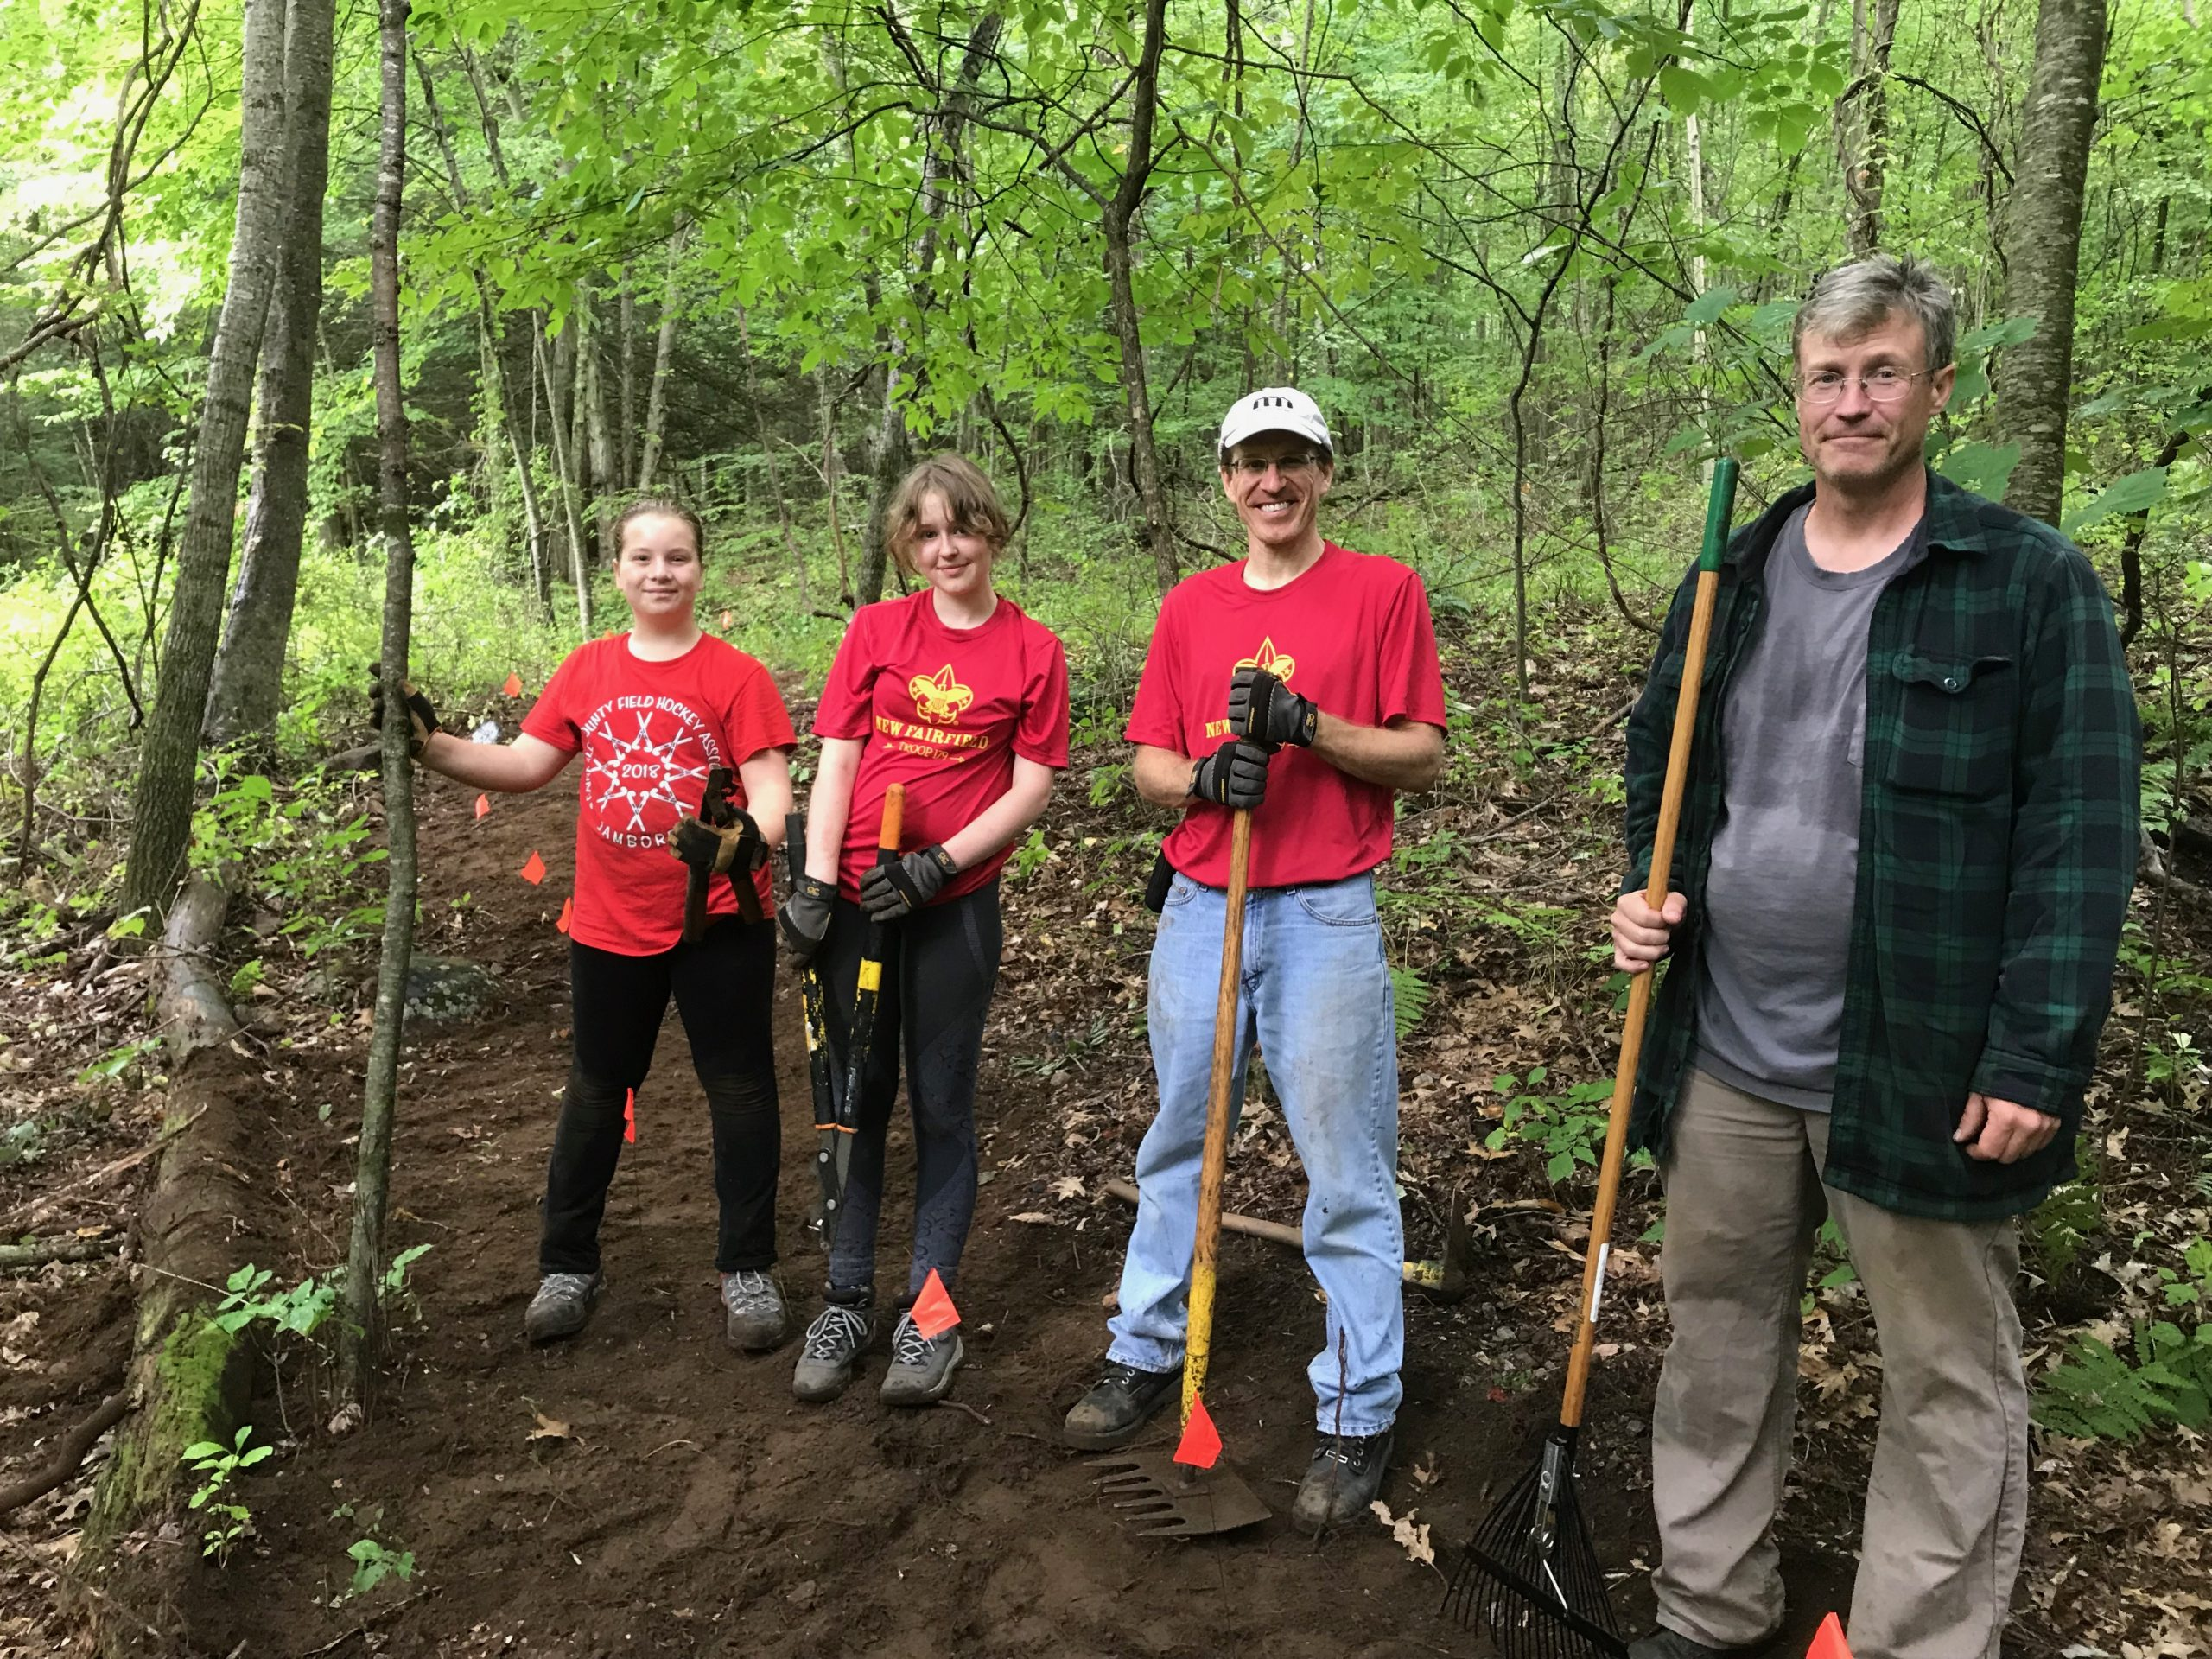 Volunteer - Volunteers building trails at Macricostas Preserve during a monthly work party in 2019. Photo by Mike Giapponi.